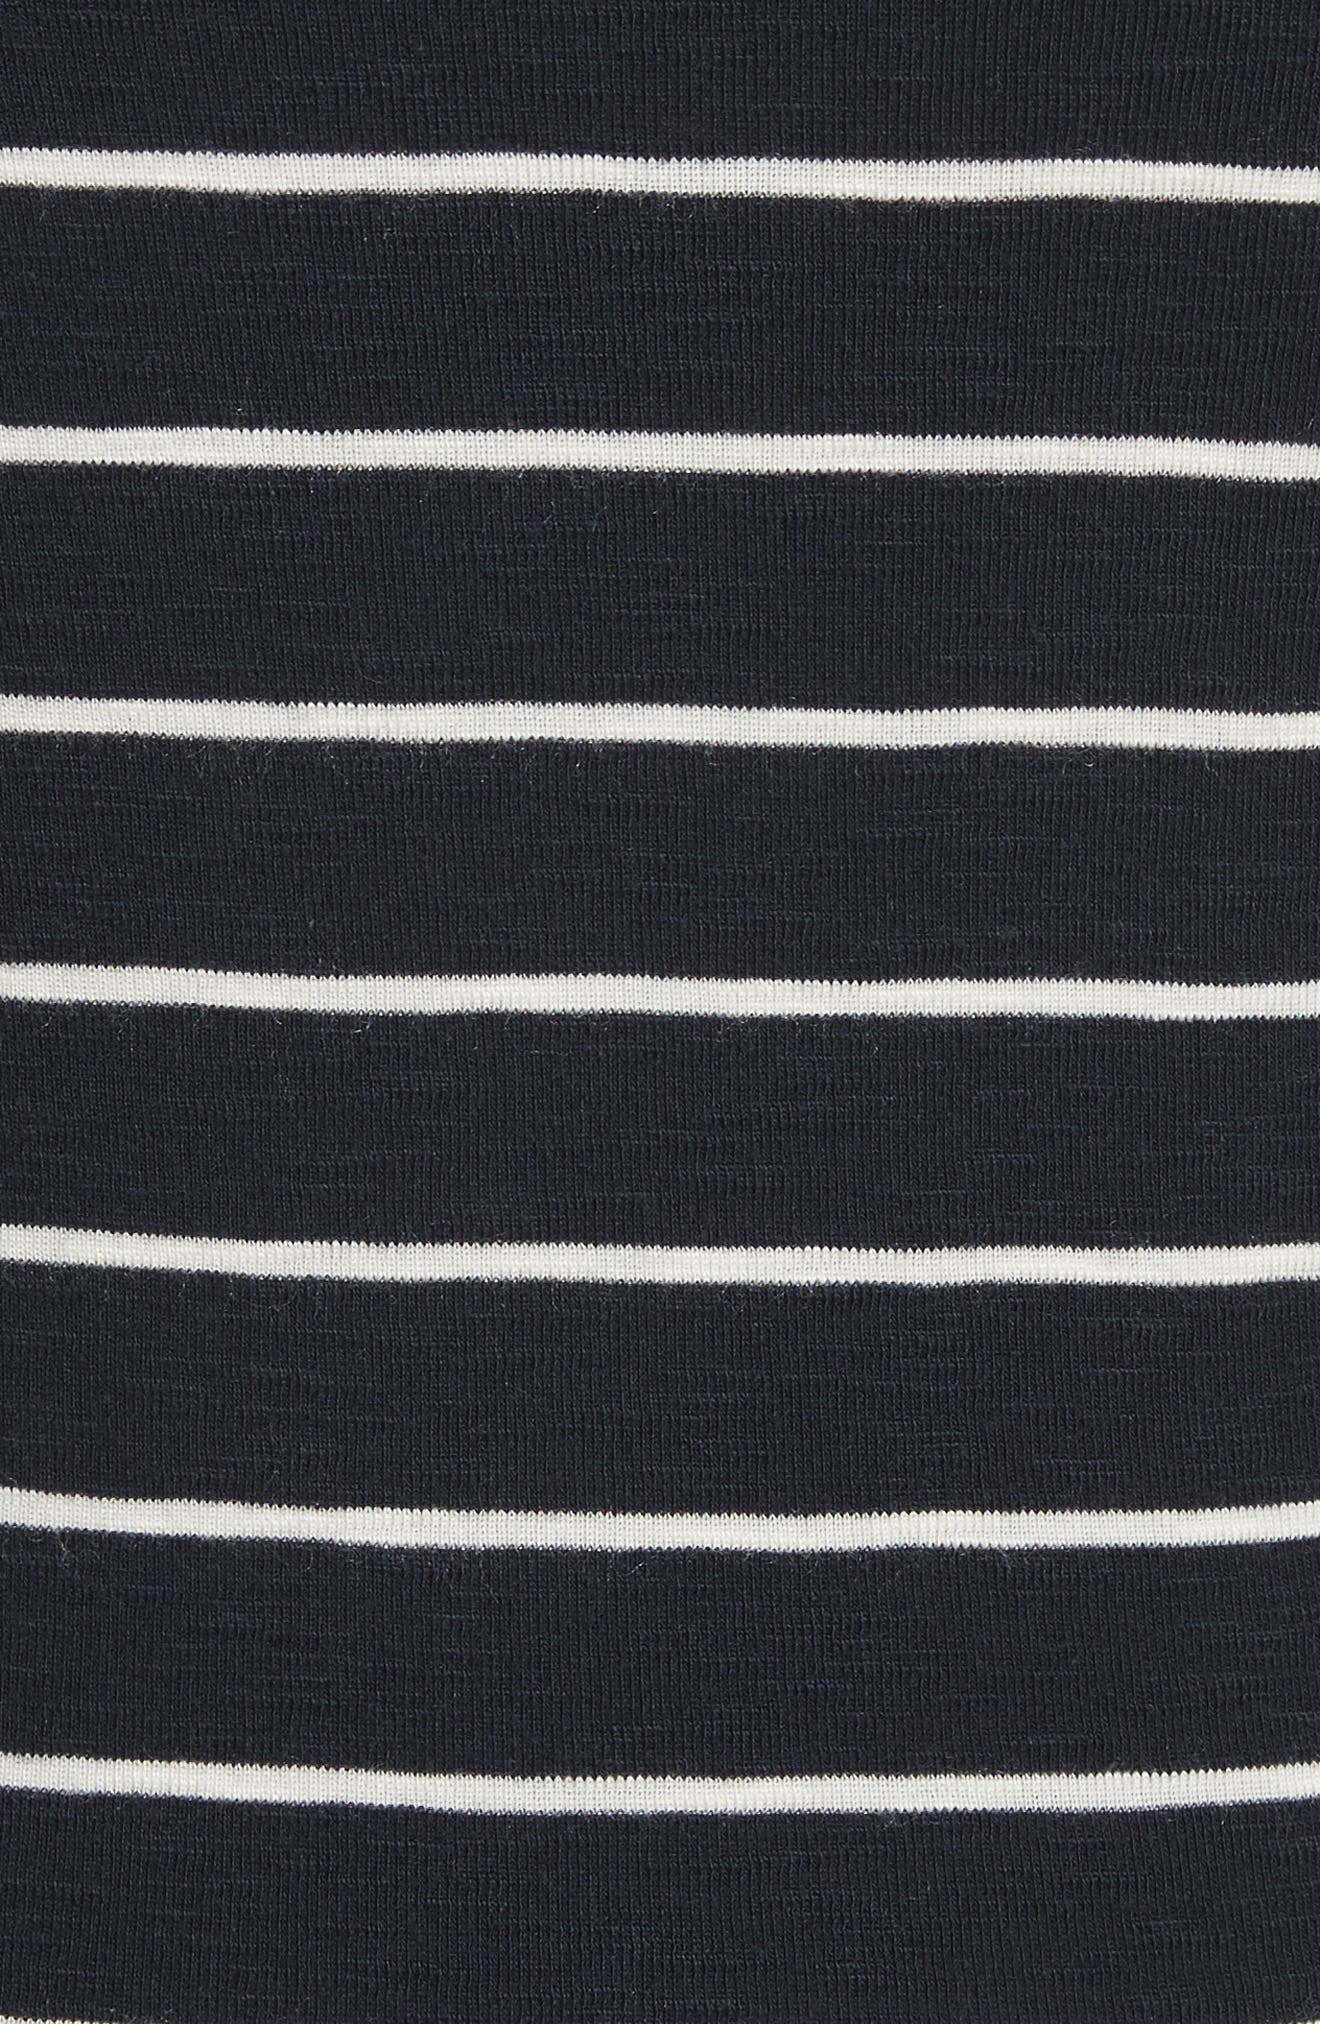 Chalk Stripe Fitted Crewneck Tee,                             Alternate thumbnail 5, color,                             467